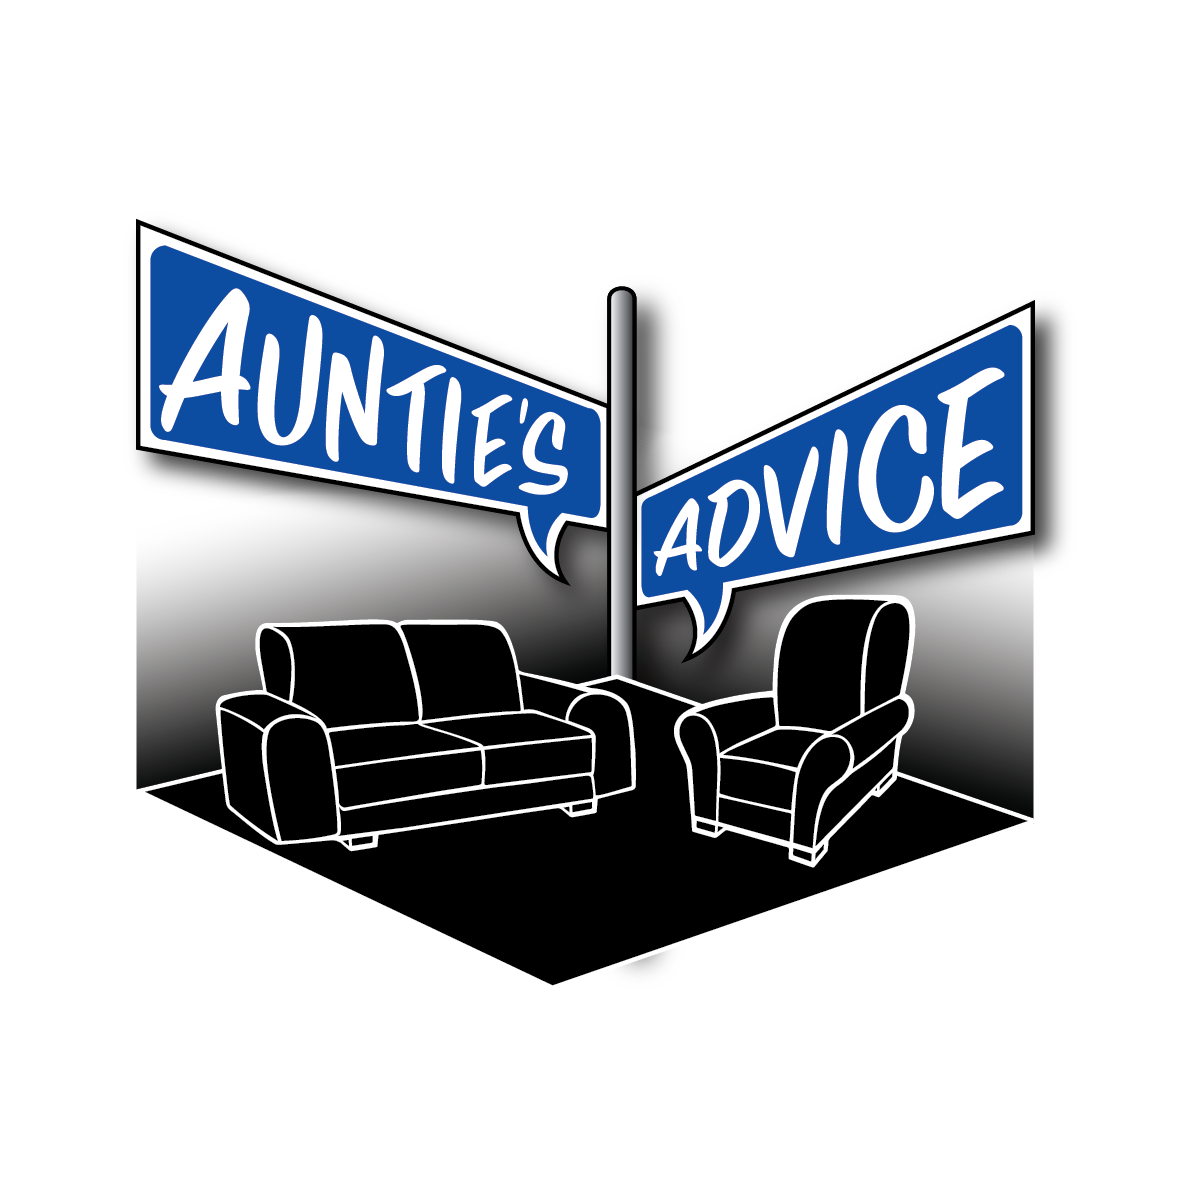 Auntie's Advice_logo FINAL.png